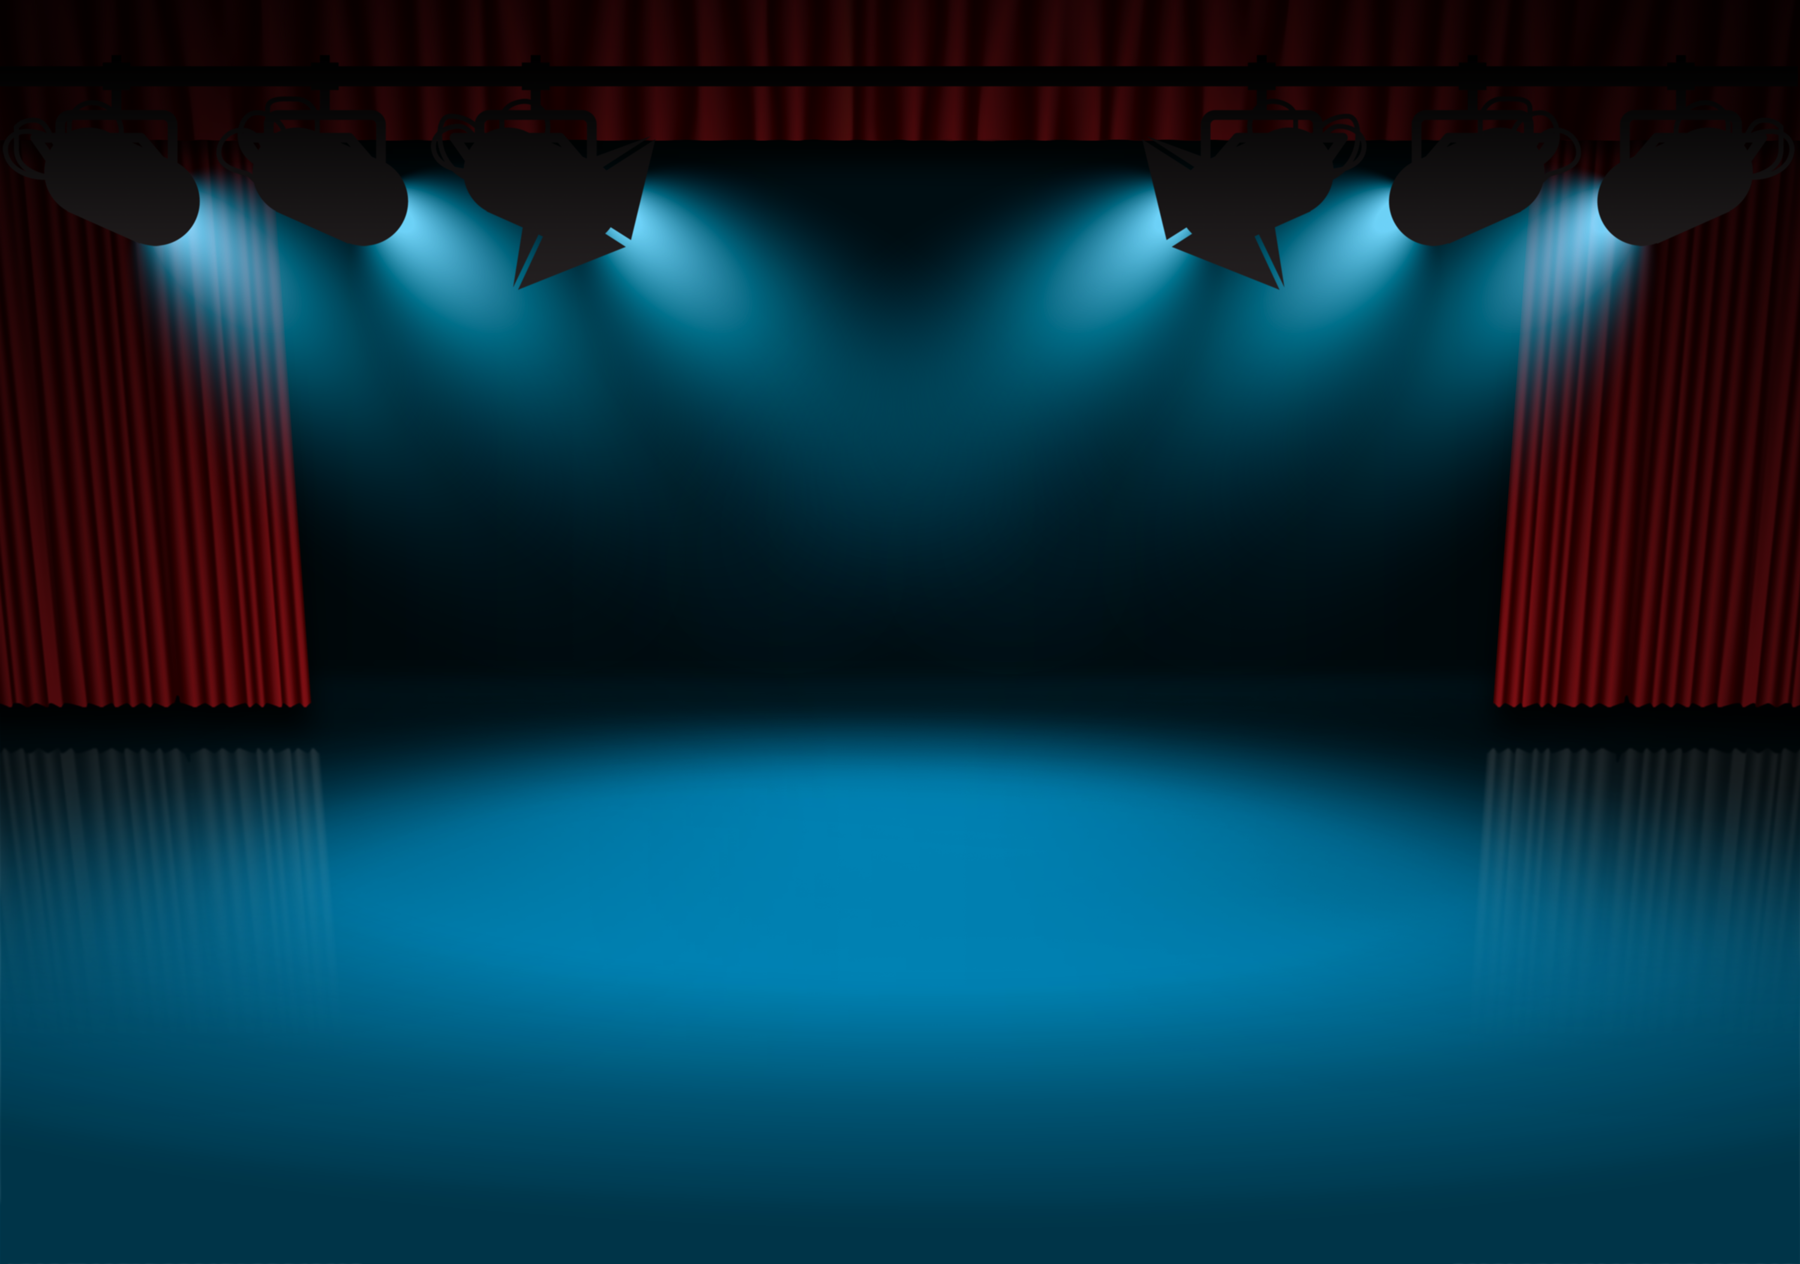 Theatre clipart stage background #5 - Theatre PNG HD